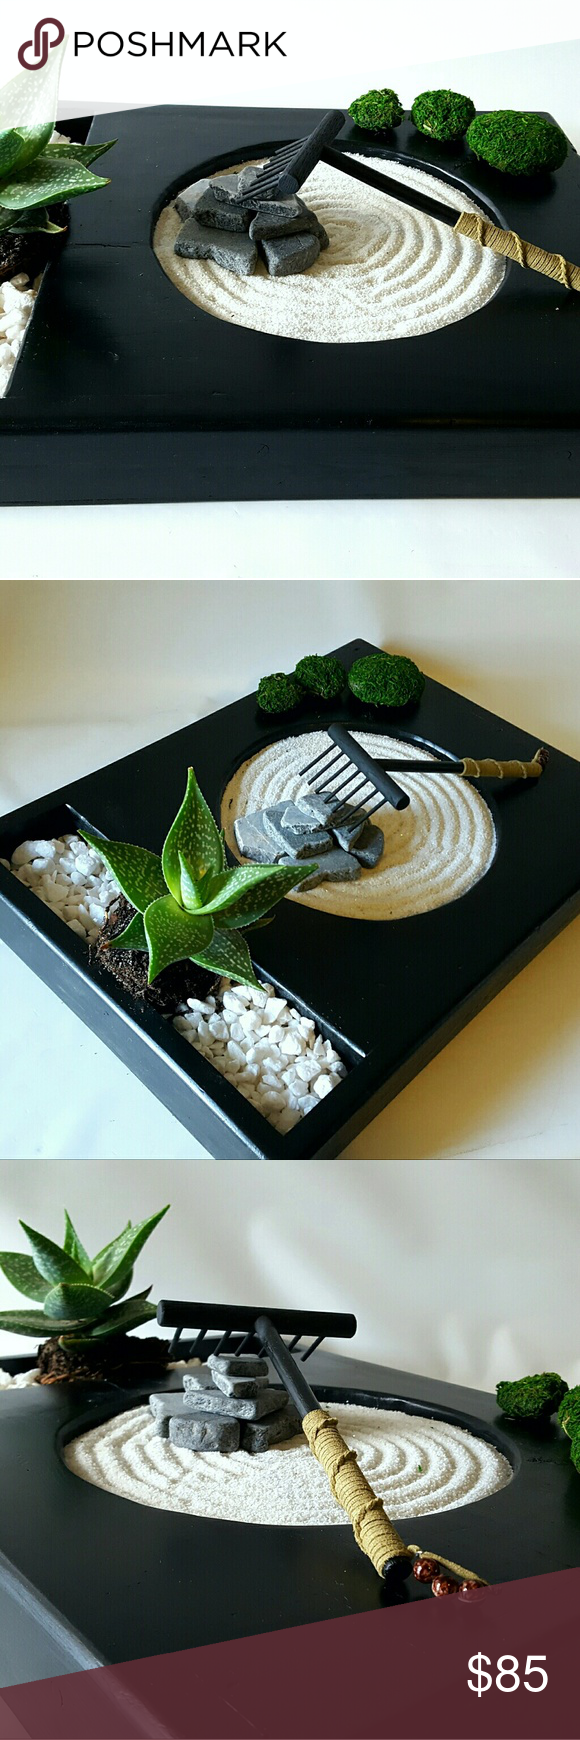 Desk Or Table Top Zen Garden With Solid Oak Stand And Buddha Diy Kit Zen Rock Garden Miniature Zen Garden Desk Zen Garden